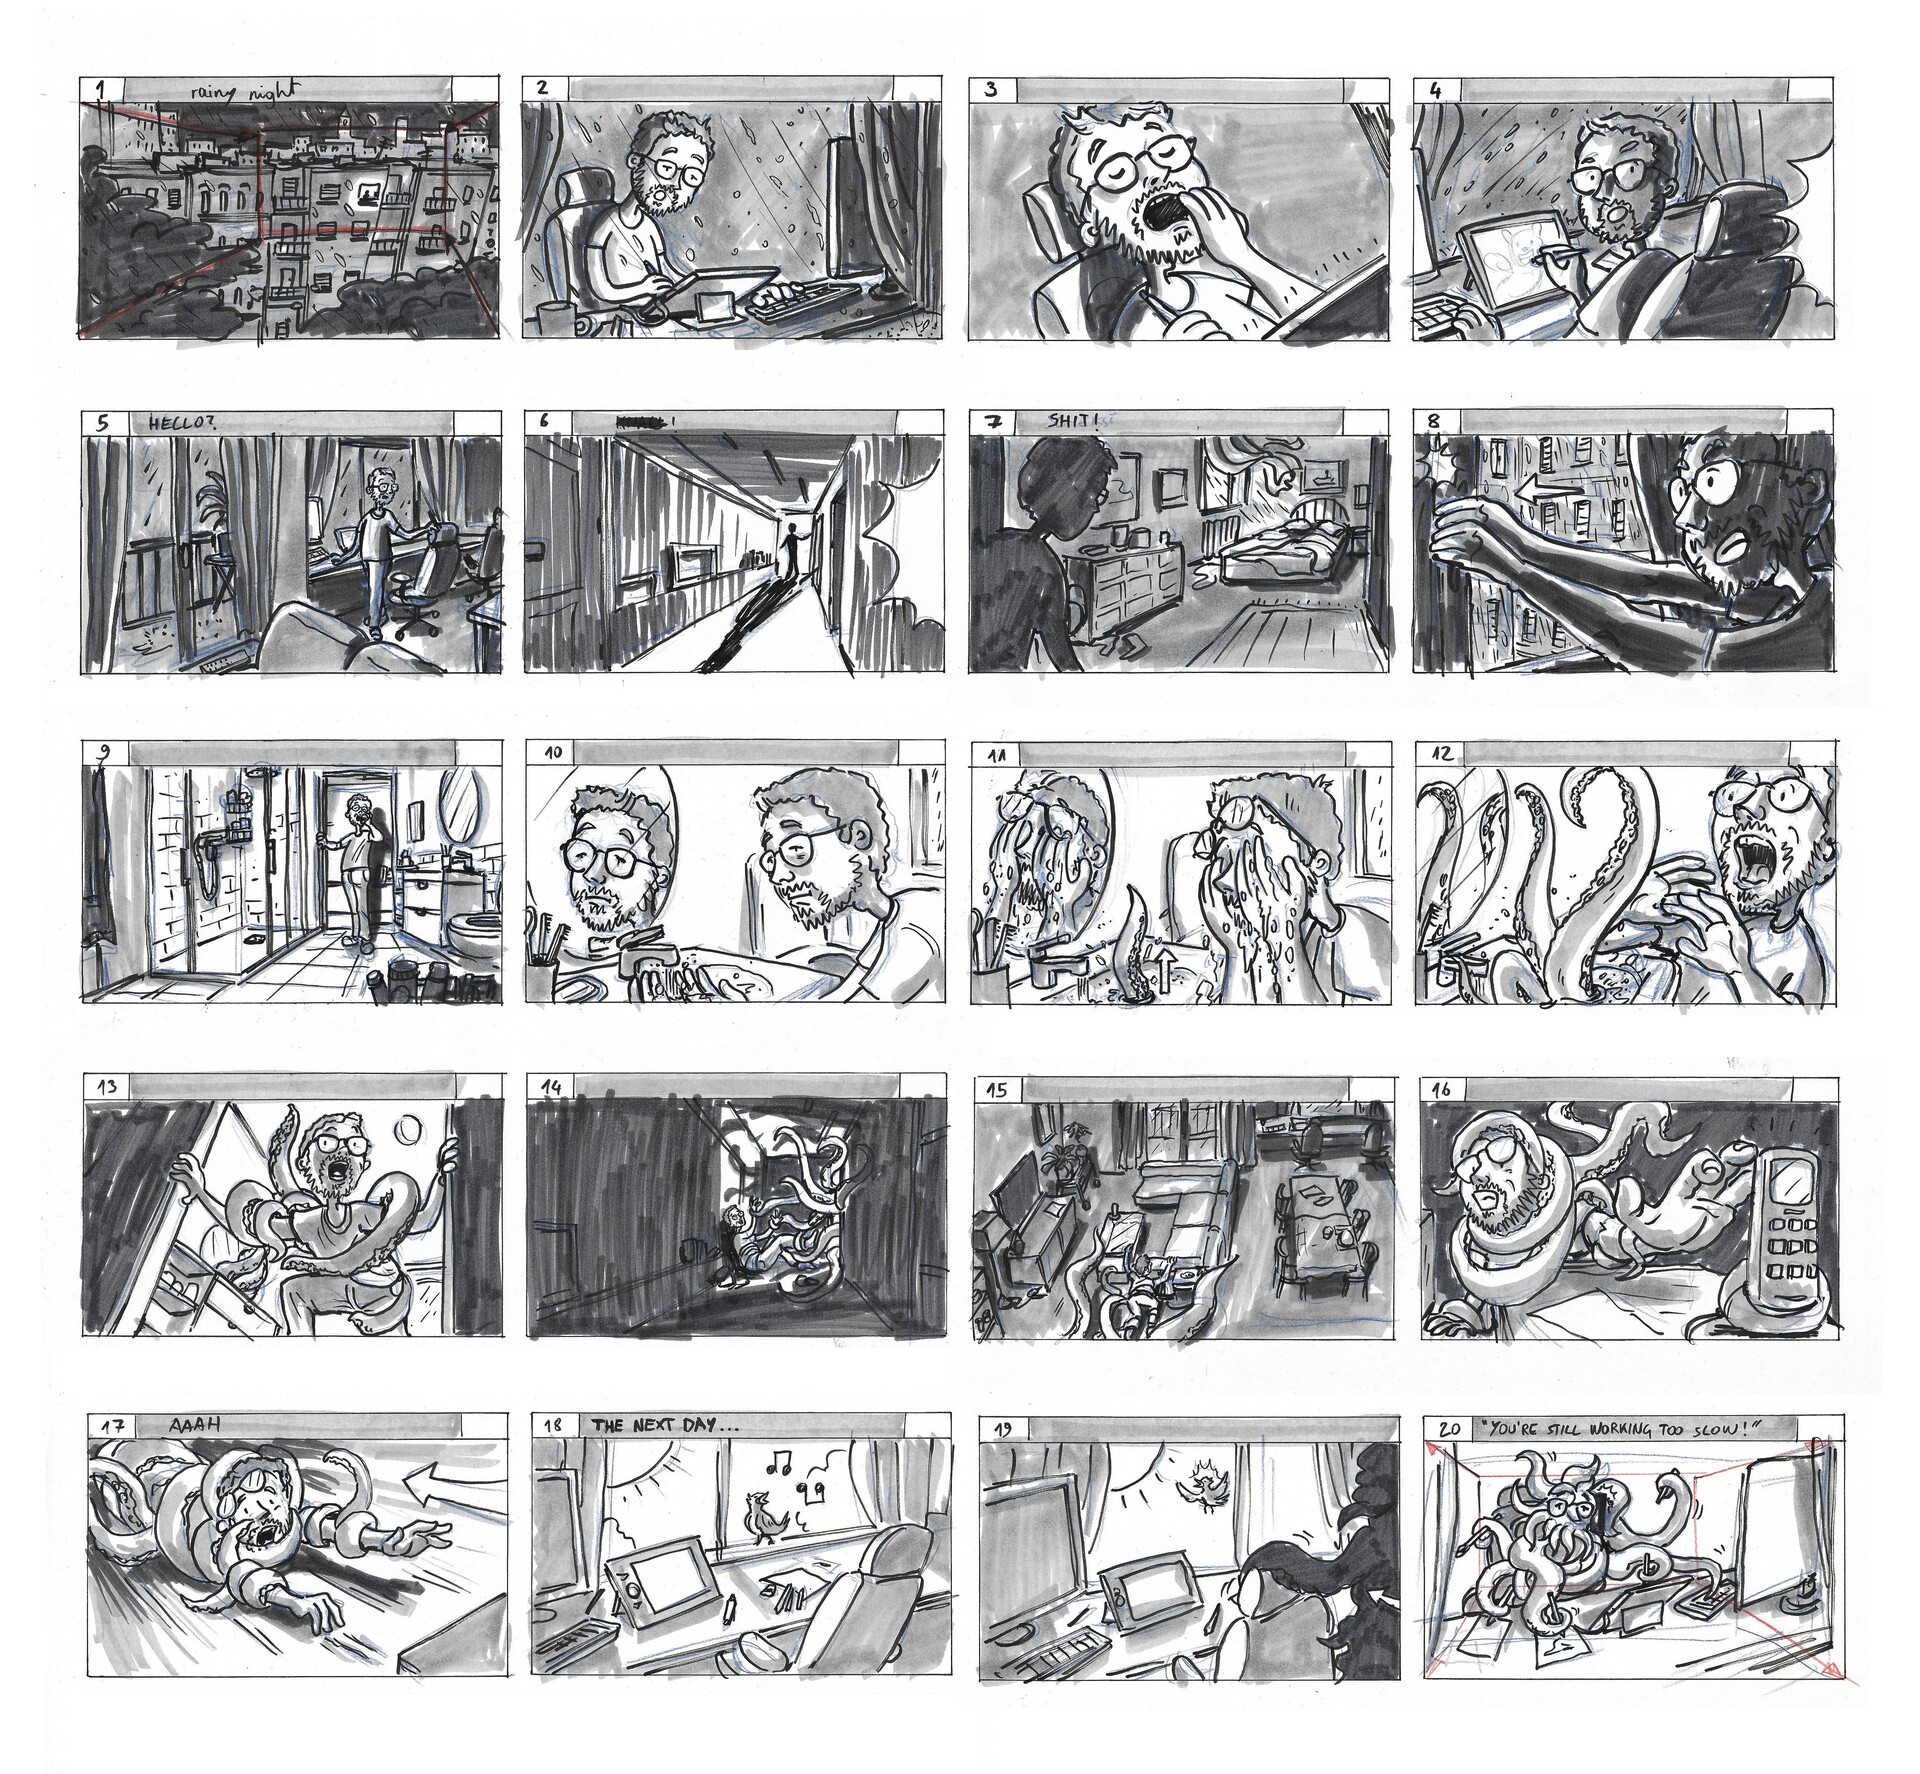 The initial 20 frame storyboard of the story